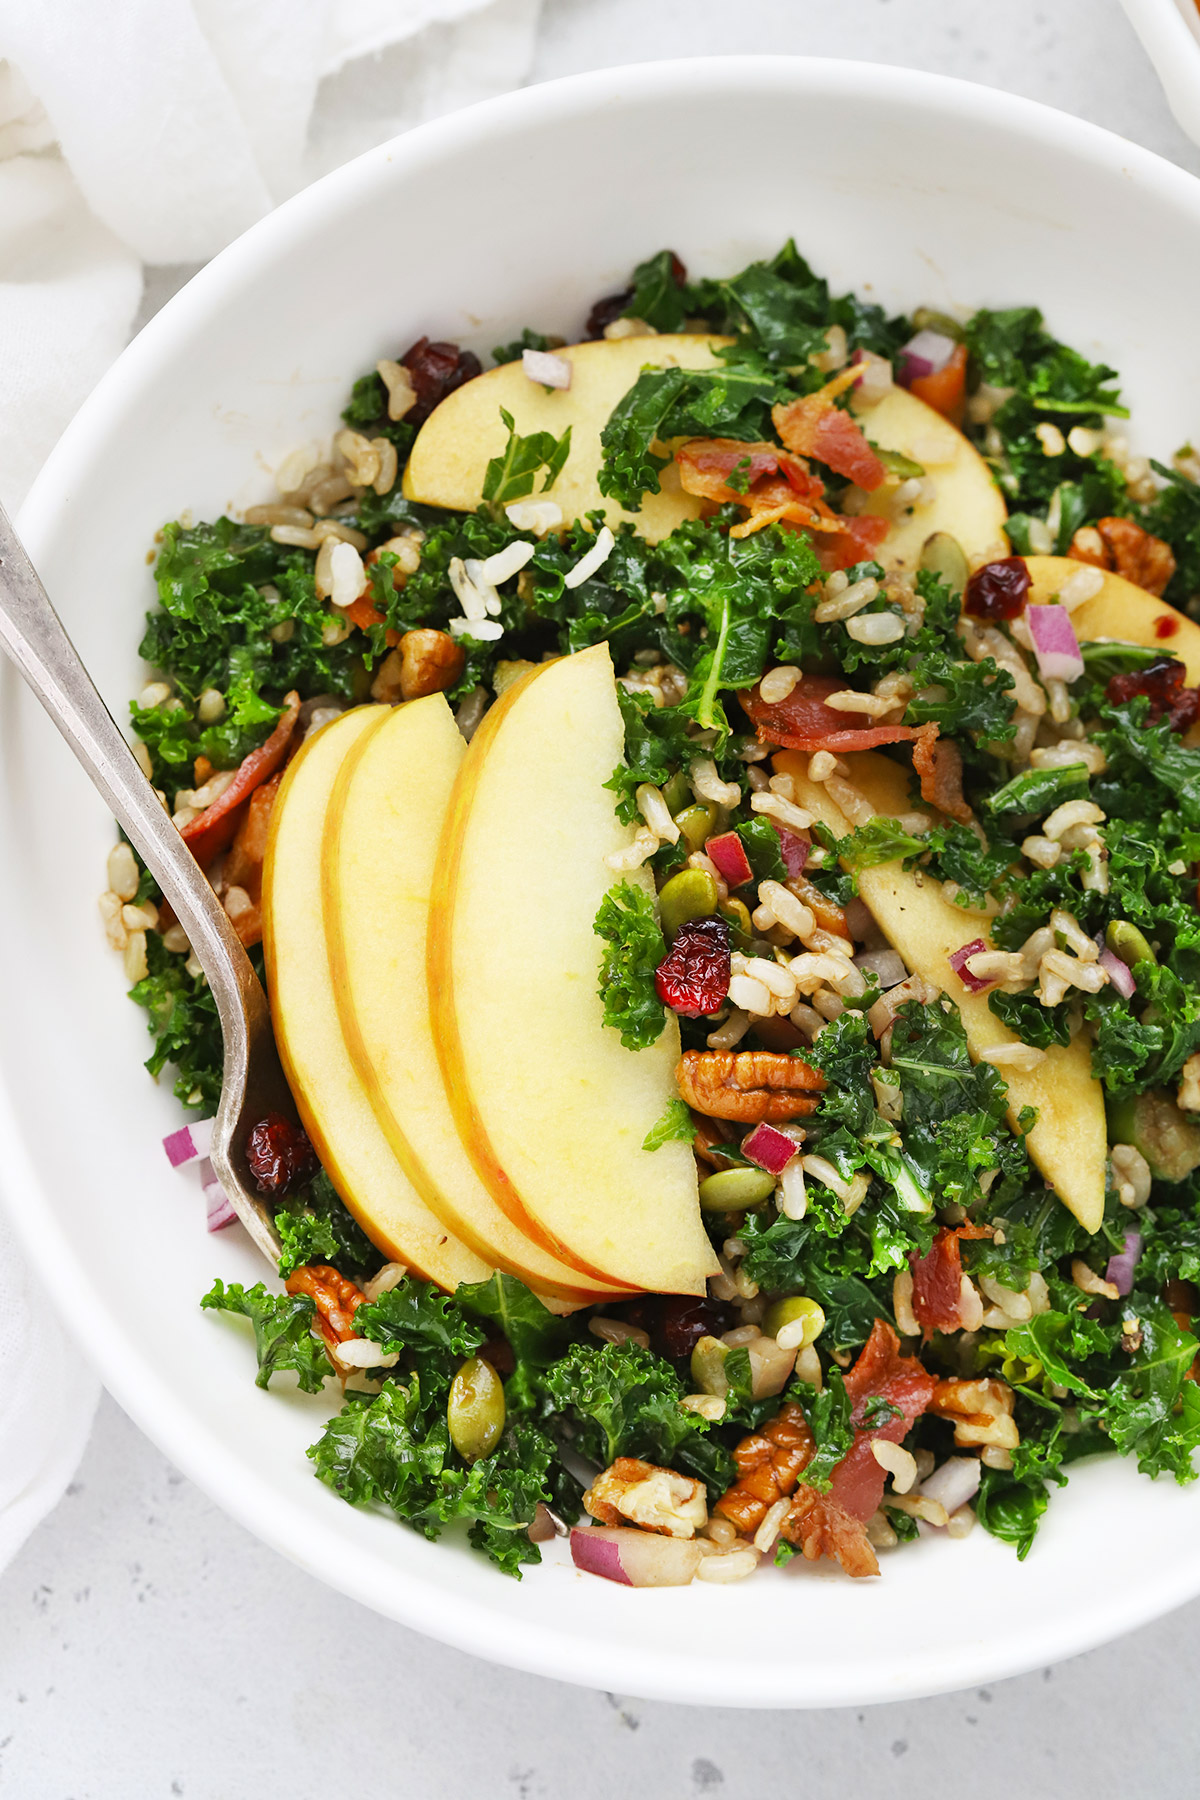 Close up overhead view of White bowl of Harvest Apple Kale Salad with Balsamic Dressing